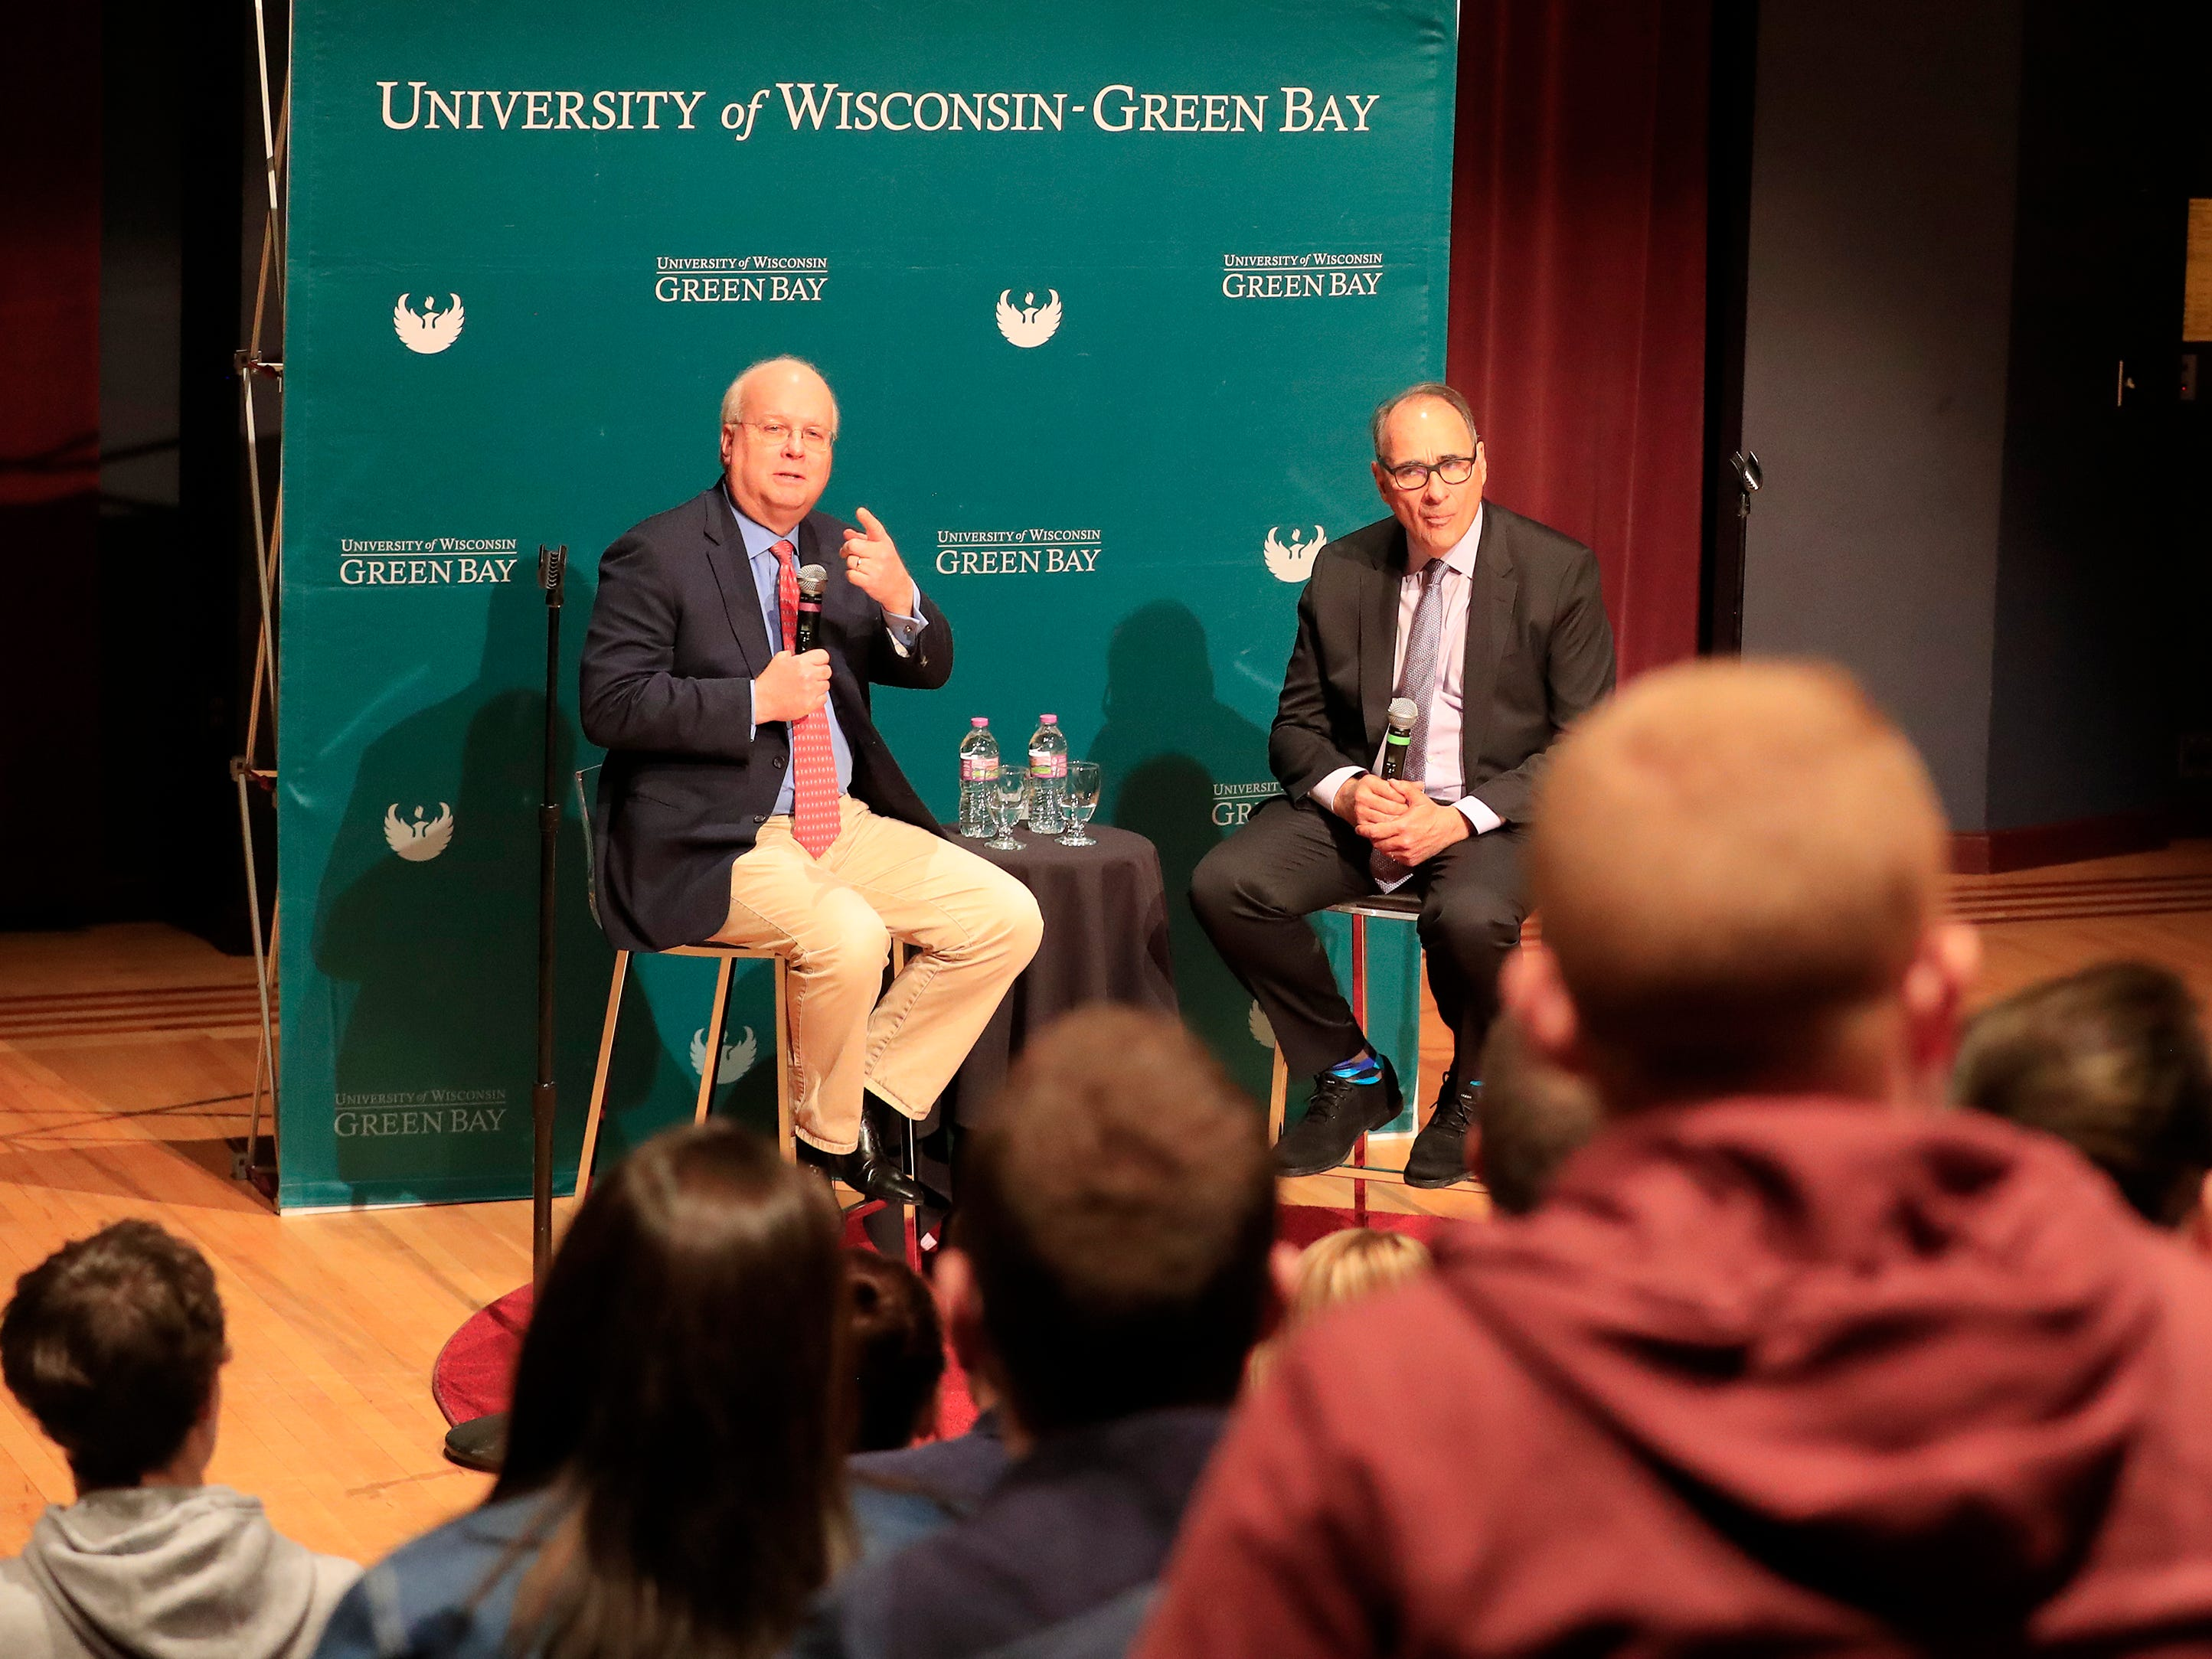 Political consultants Karl Rove (left) and David Axelrod take questions from students at UW-Green Bay on Wednesday, April 3, 2019 in Green Bay, Wis.